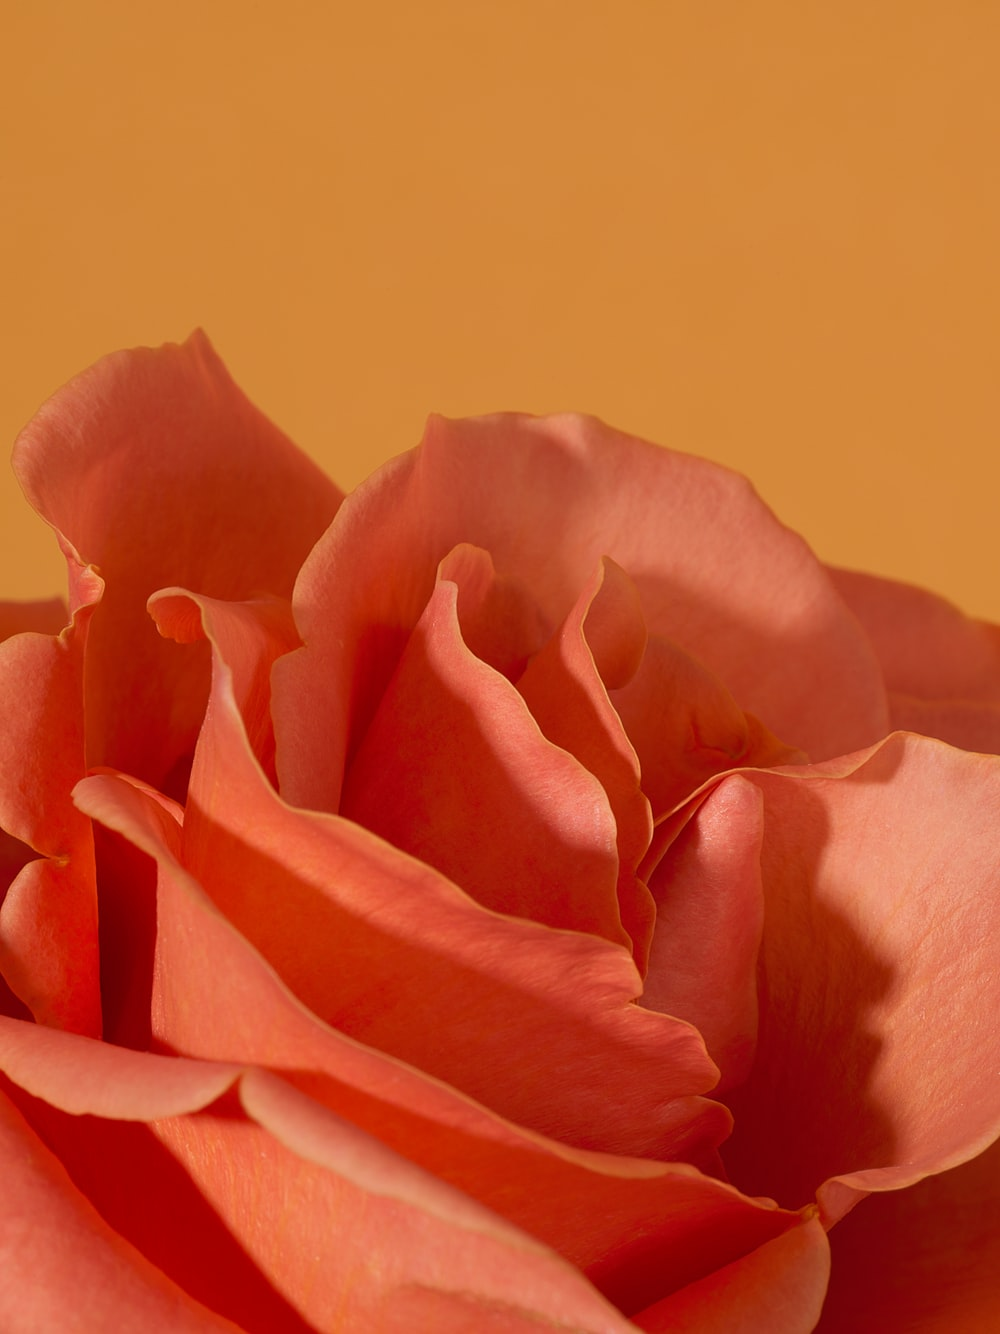 pink rose in close up photography